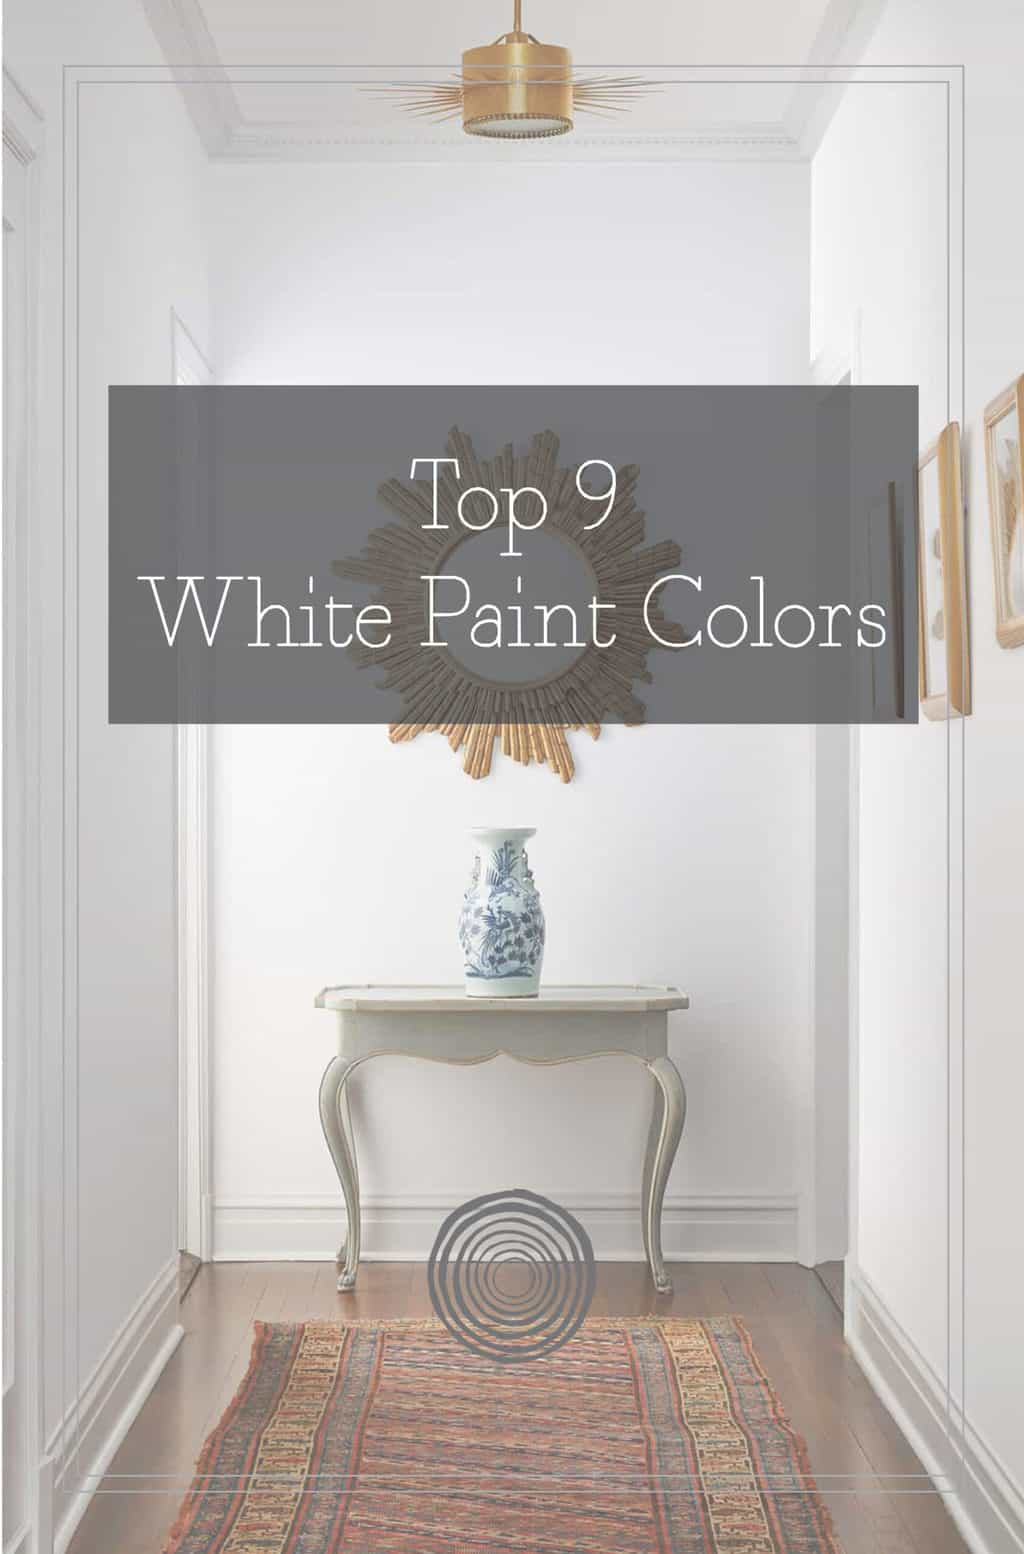 Top 9 White Paint Colors PDF